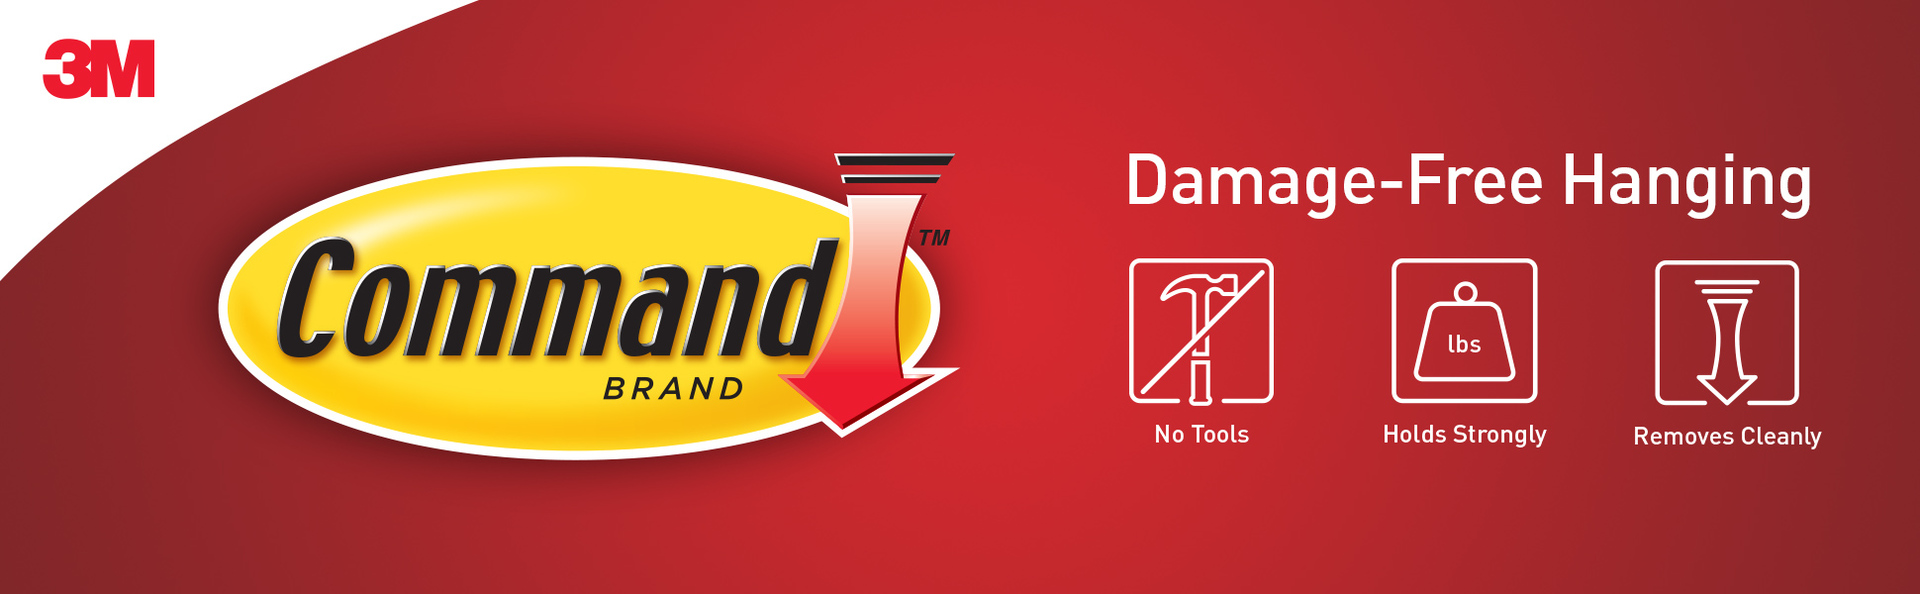 Command Brand: Damage-Free Hanging, no tools, holds strongly and removes cleanly